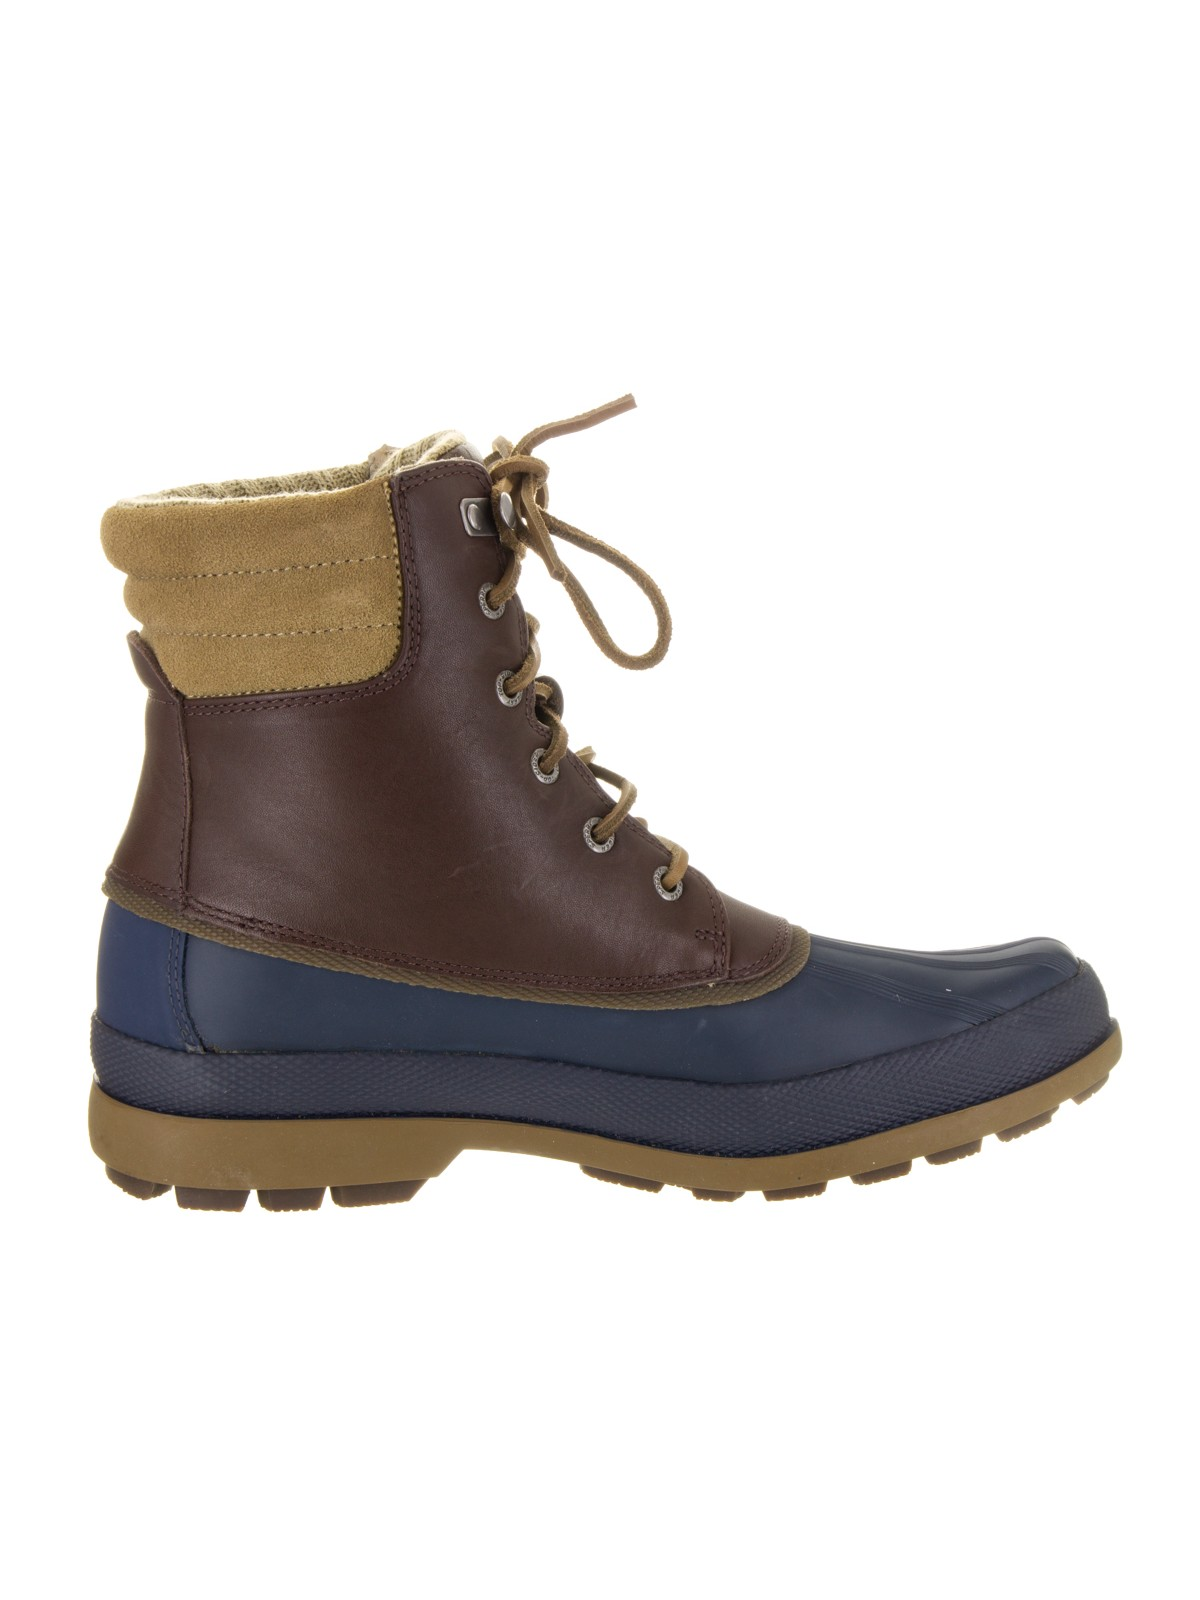 Sperry Top-Sider Men's Cold Bay Boot Boot